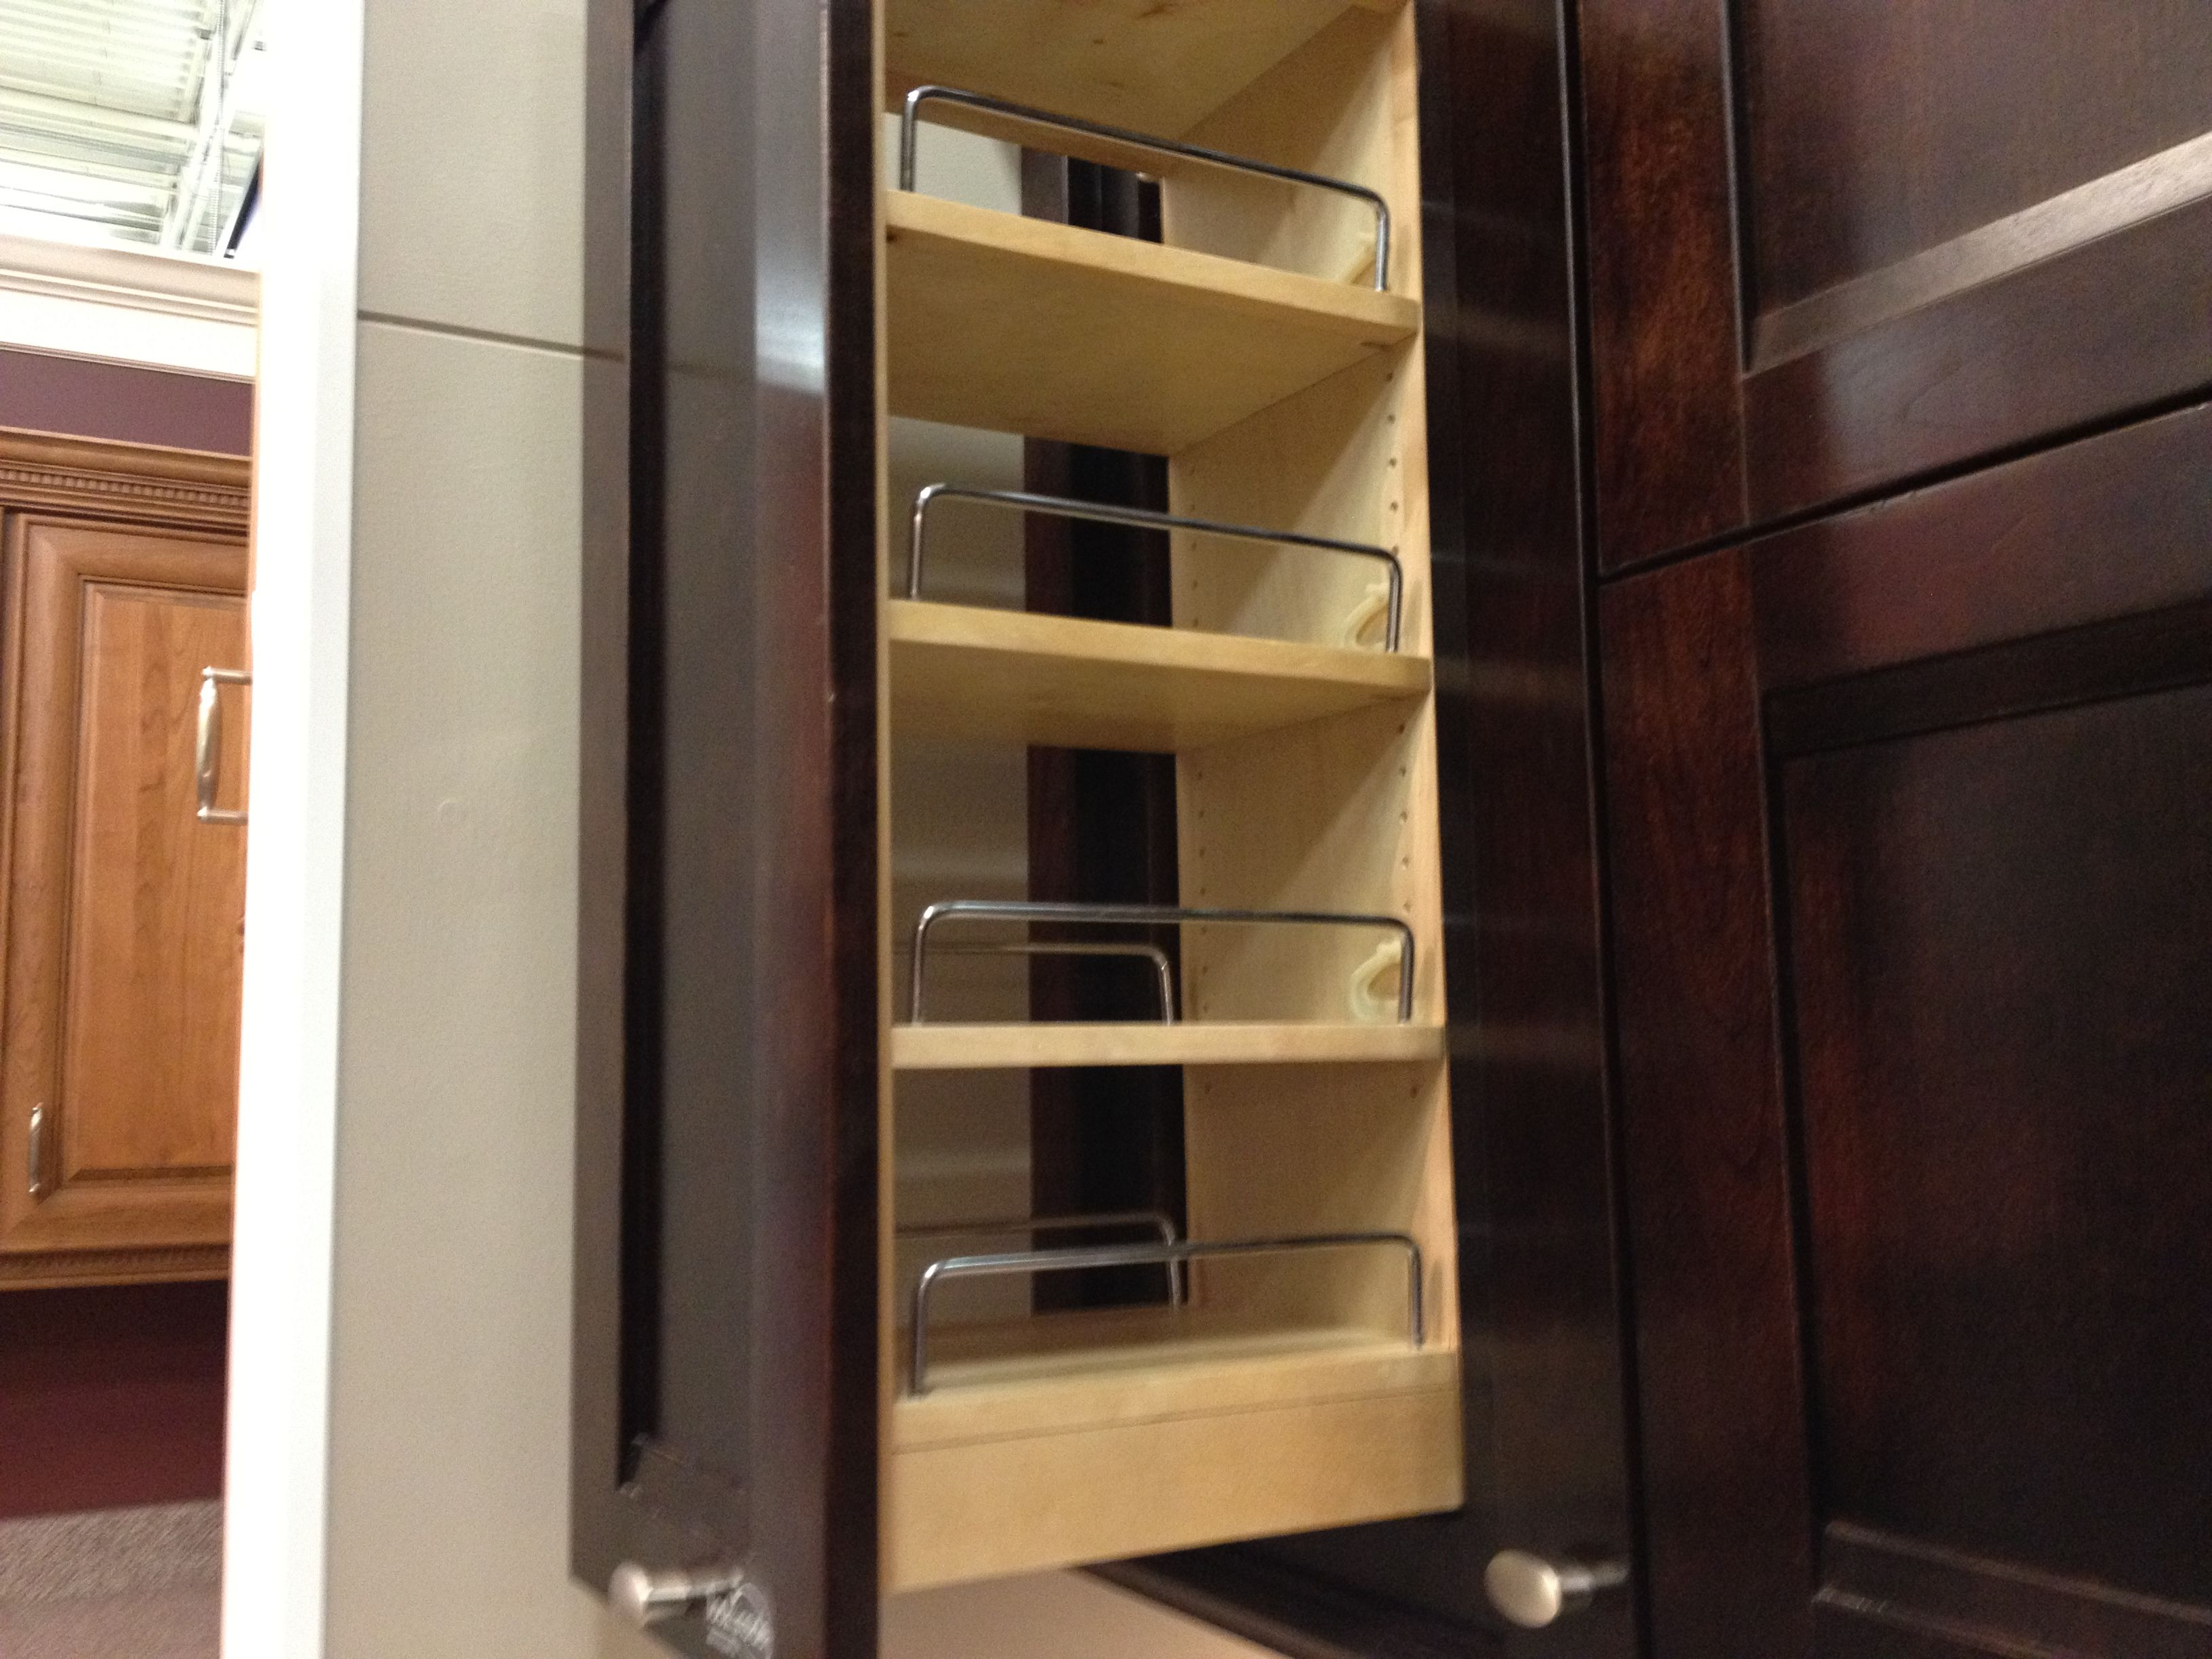 Cabinet ideas kitchen reno ideas pinterest - Kitchen cabinets pinterest ...